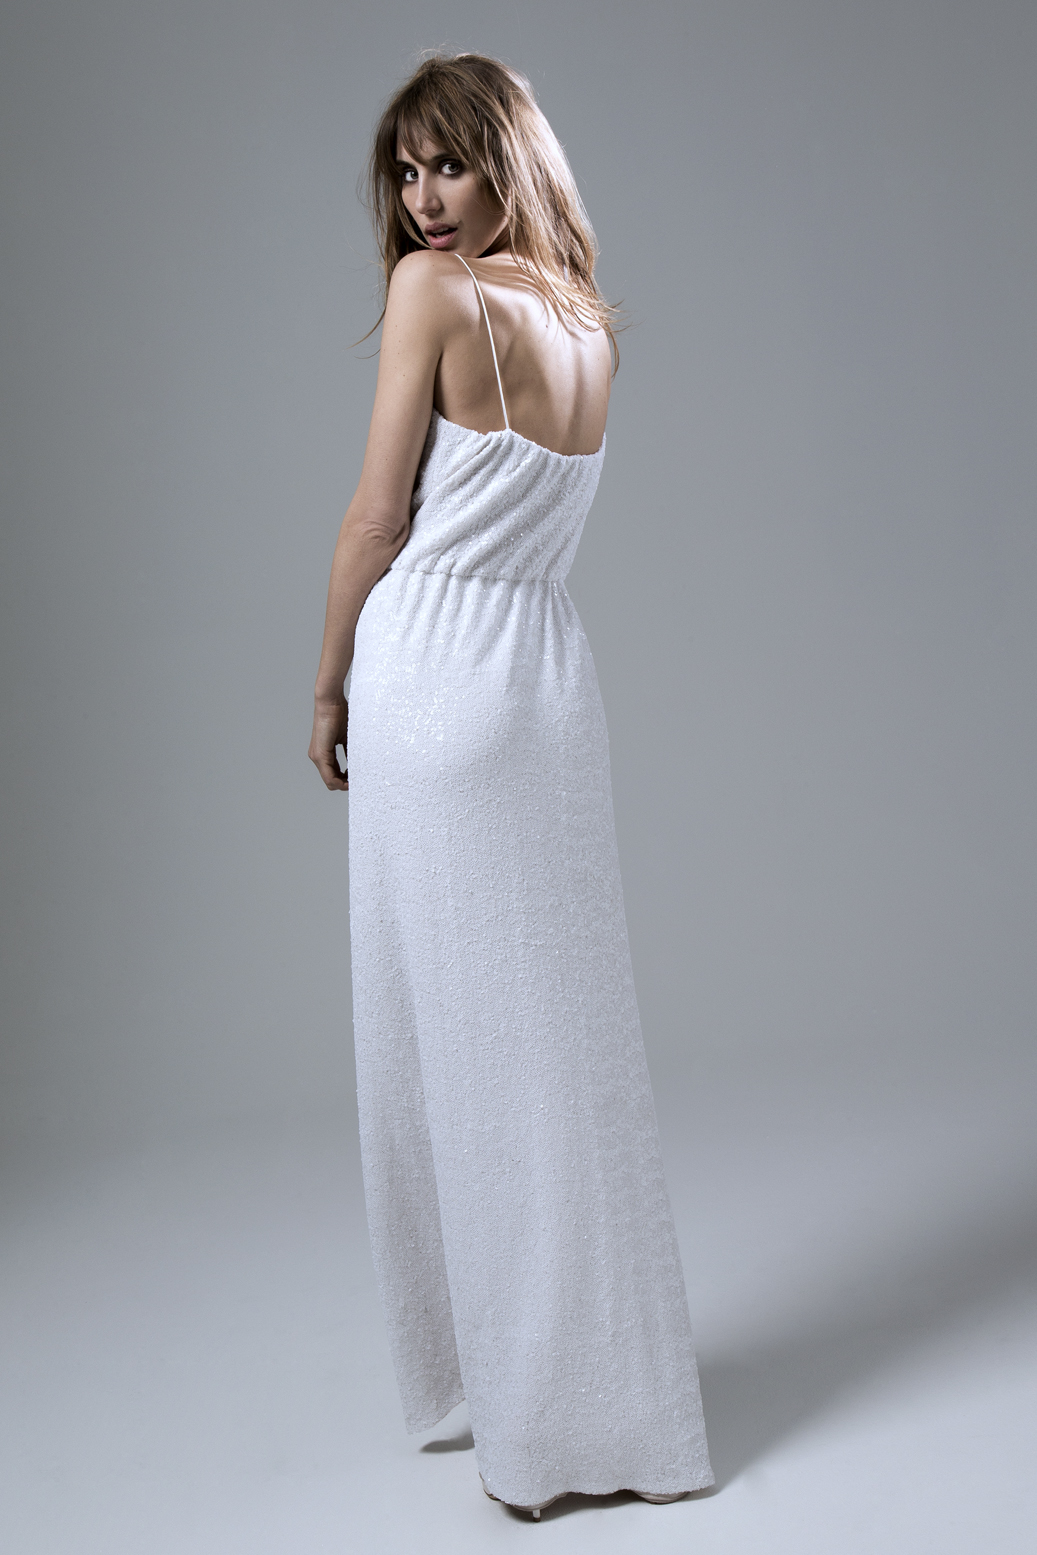 Back of the Celeste Sequinned Dress with High Slit Wedding Dress by Halfpenny London